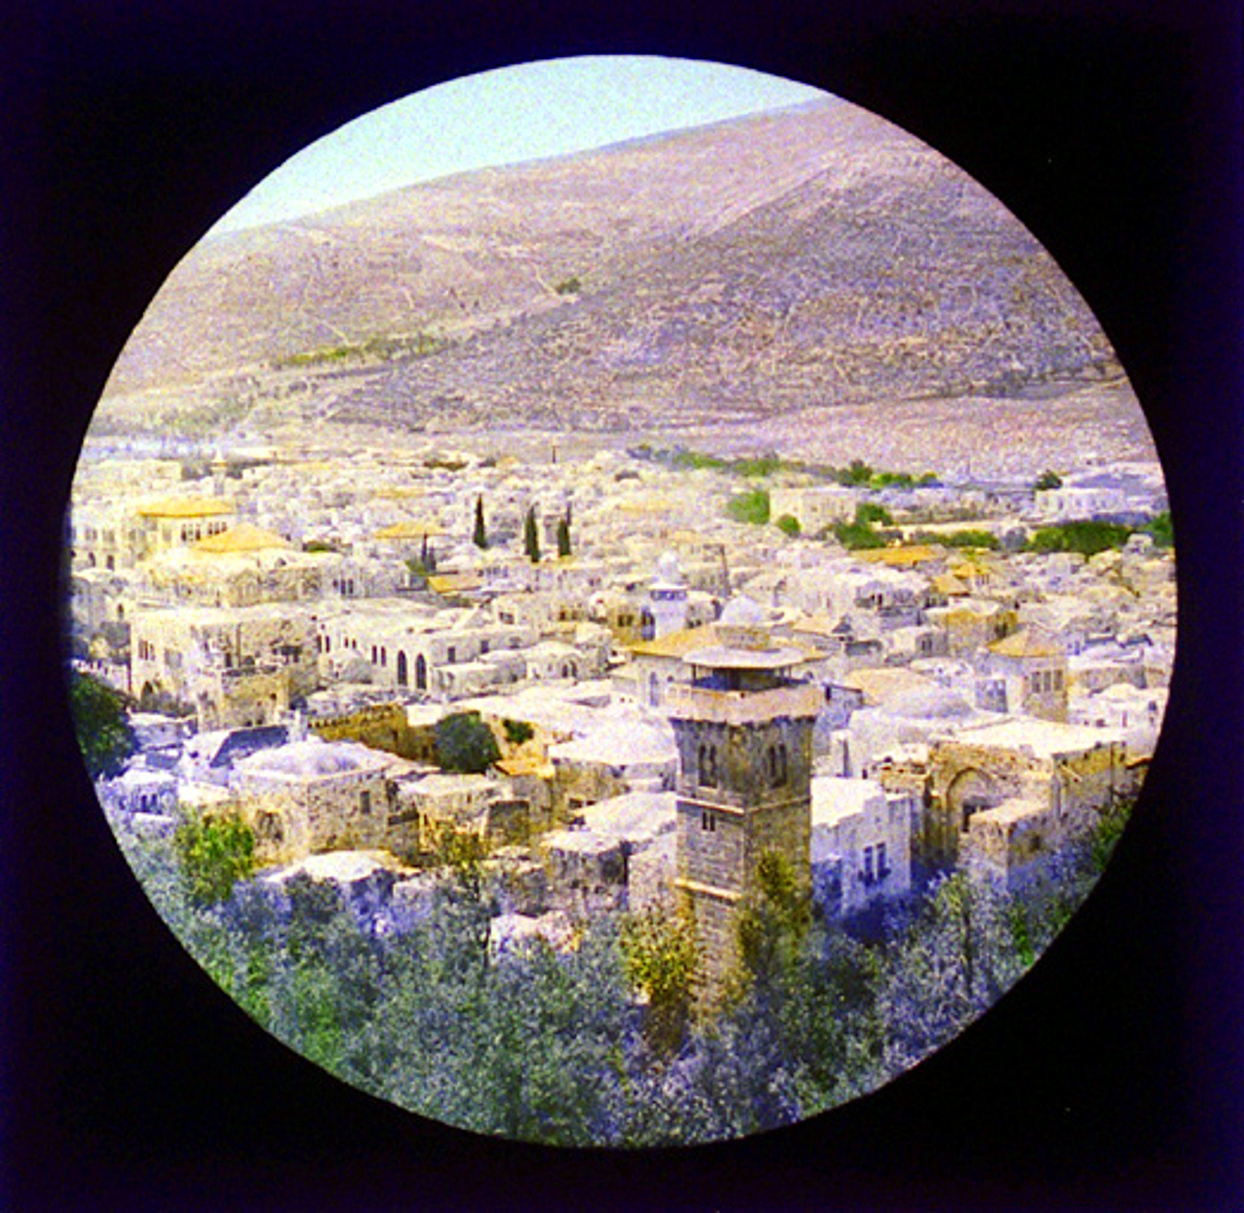 Nablus - نابلس : NABLUS - Late 19th, early 20th c. 53 - General view of The Queen of Palestine - NABLUS